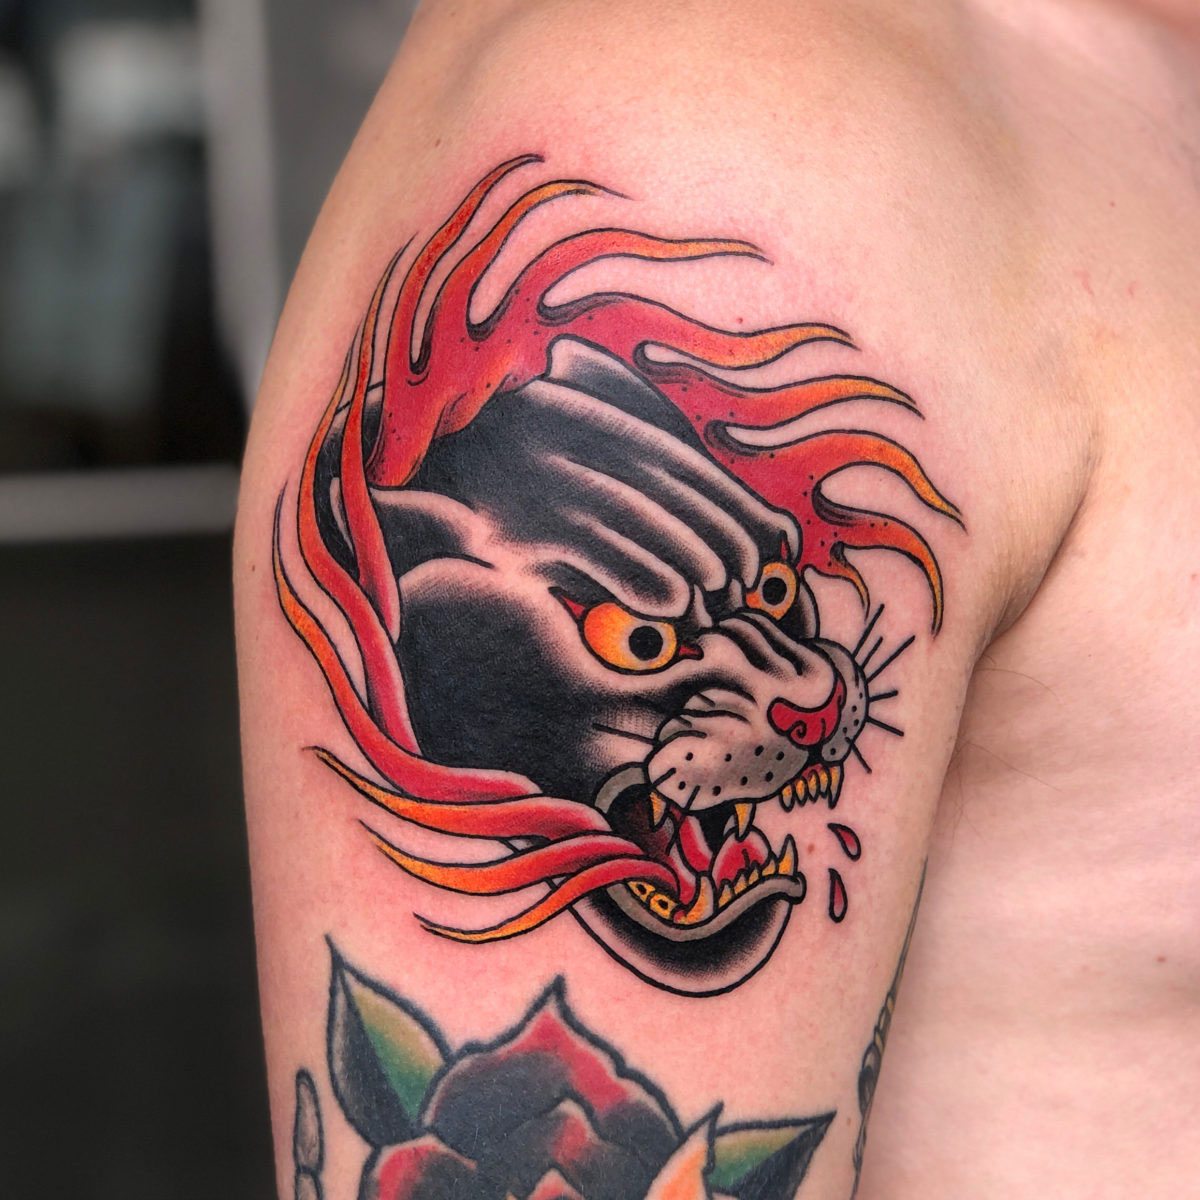 traditional panther tattoo with flames around tattooed in colour bright and bold on upper arm